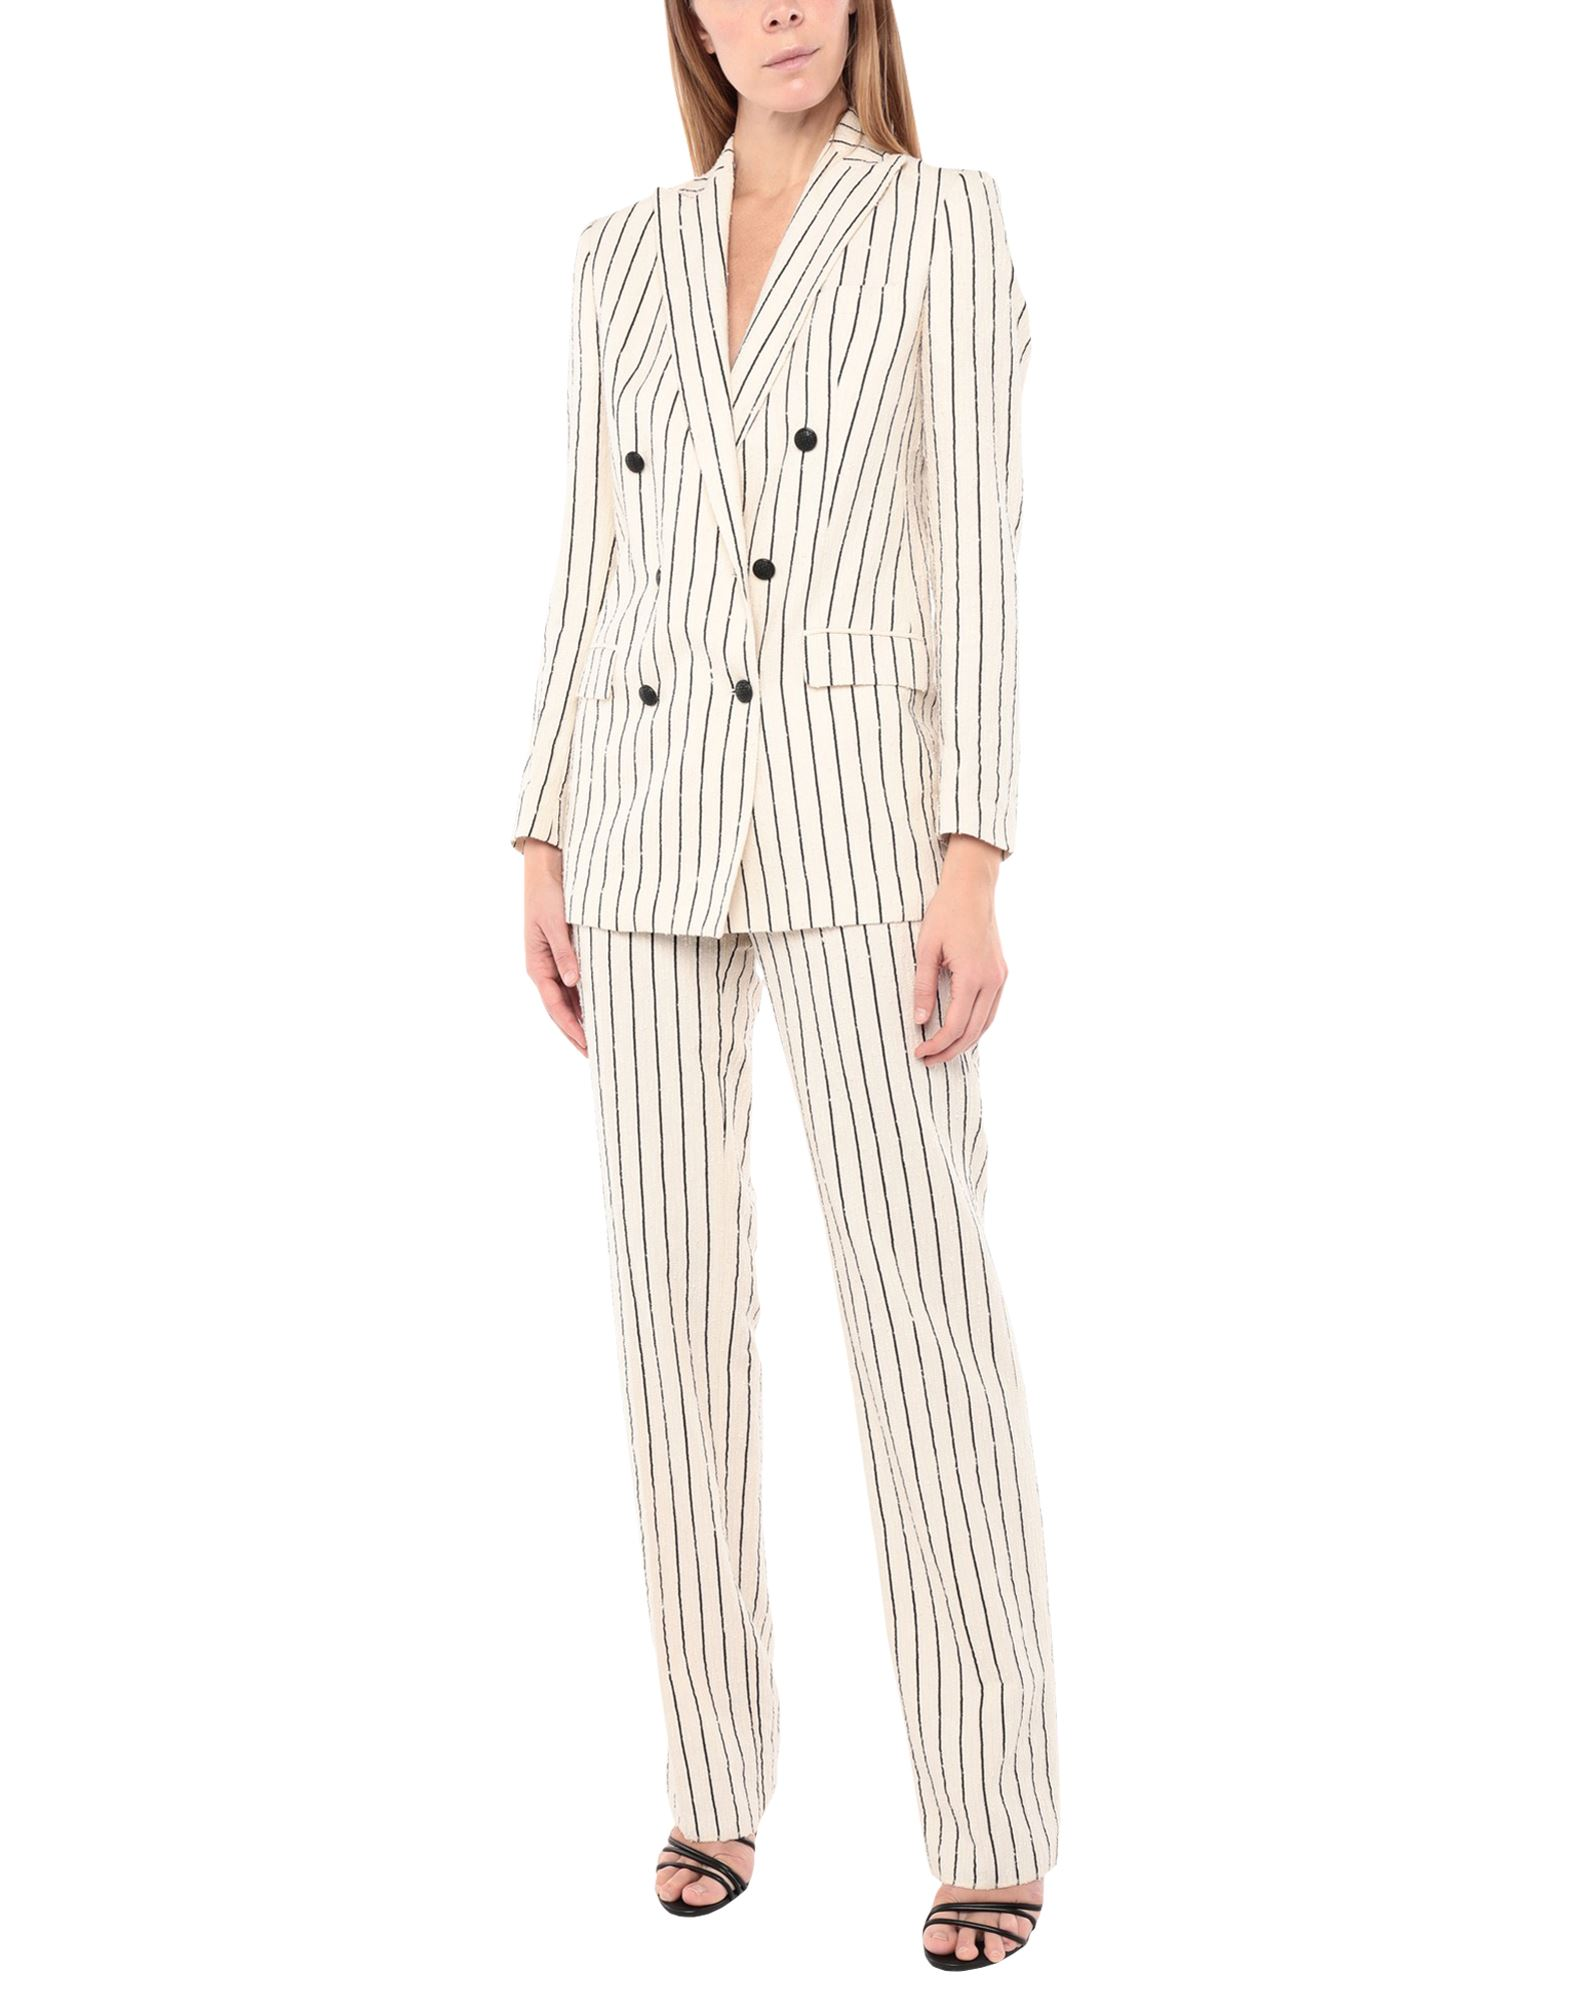 TAGLIATORE Women\\\'s suits. bouclé, no appliqués, stripes, lapel collar, long sleeves, double-breasted, multipockets, button closing, mid rise, single chest pocket, straight-leg pants, hook-and-bar, zip, fully lined, small sized. 48% Cotton, 44% Viscose, 8% Polyamide